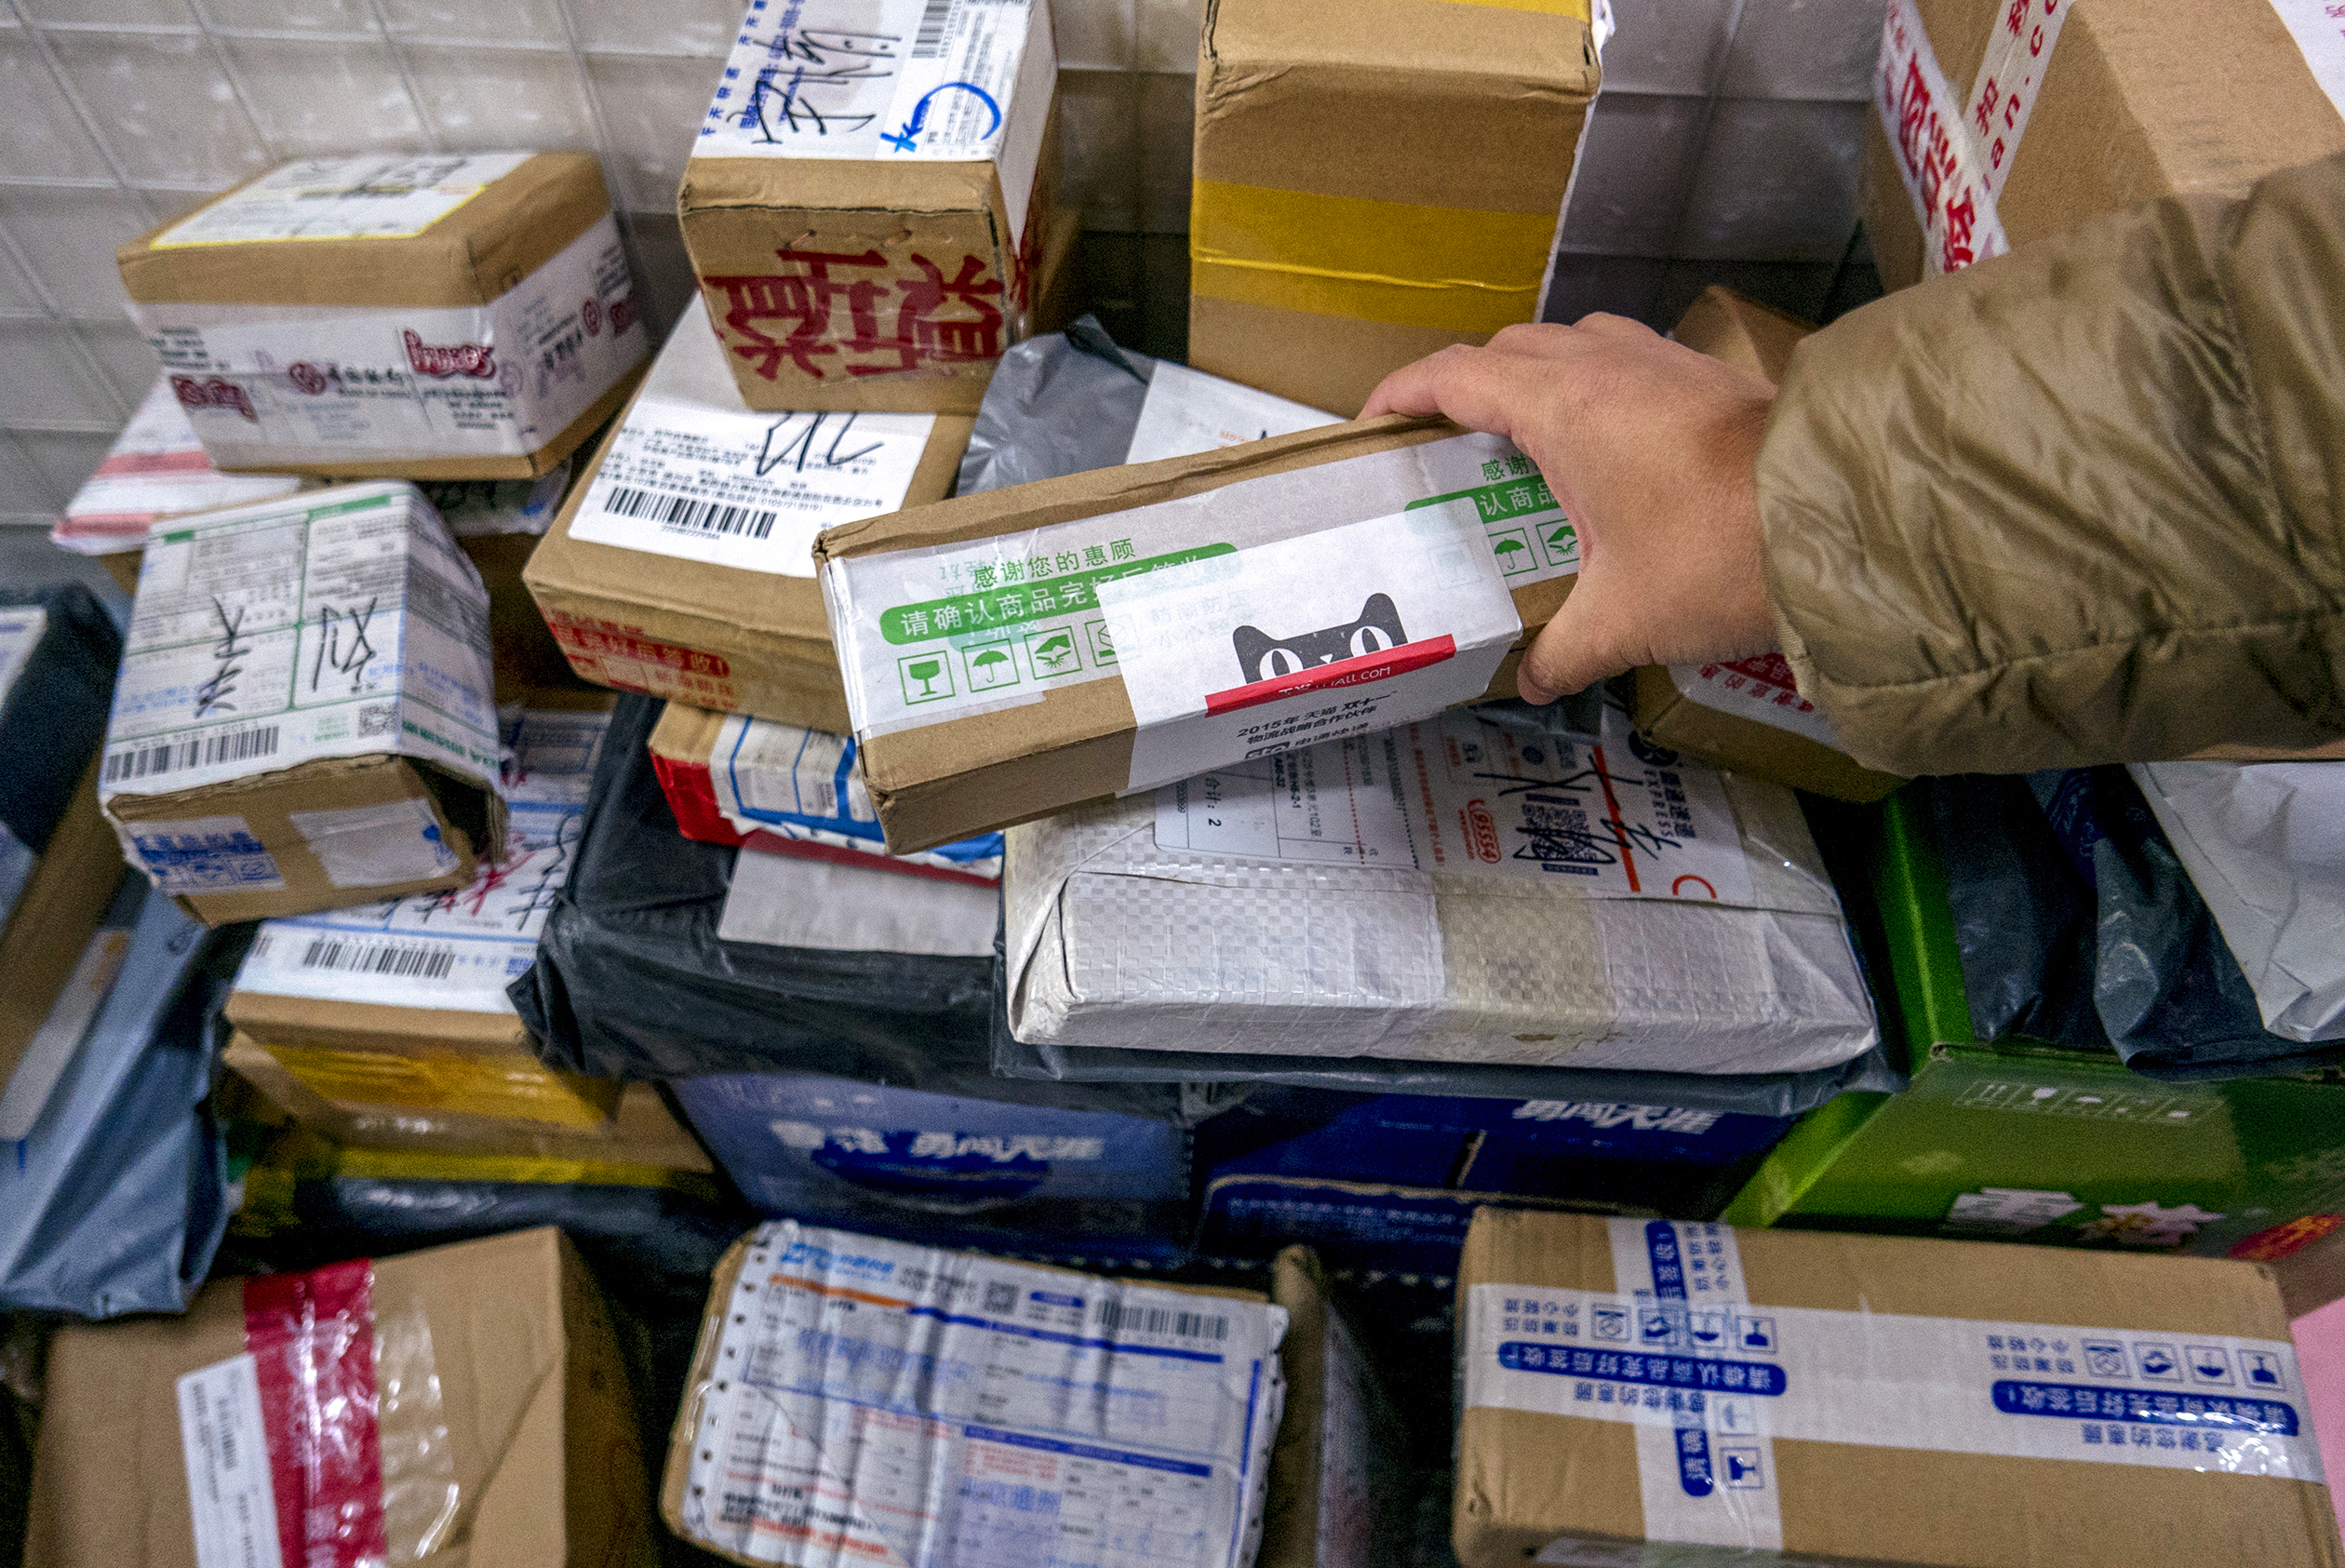 Packages are piled up in a small shop's Cainiao service